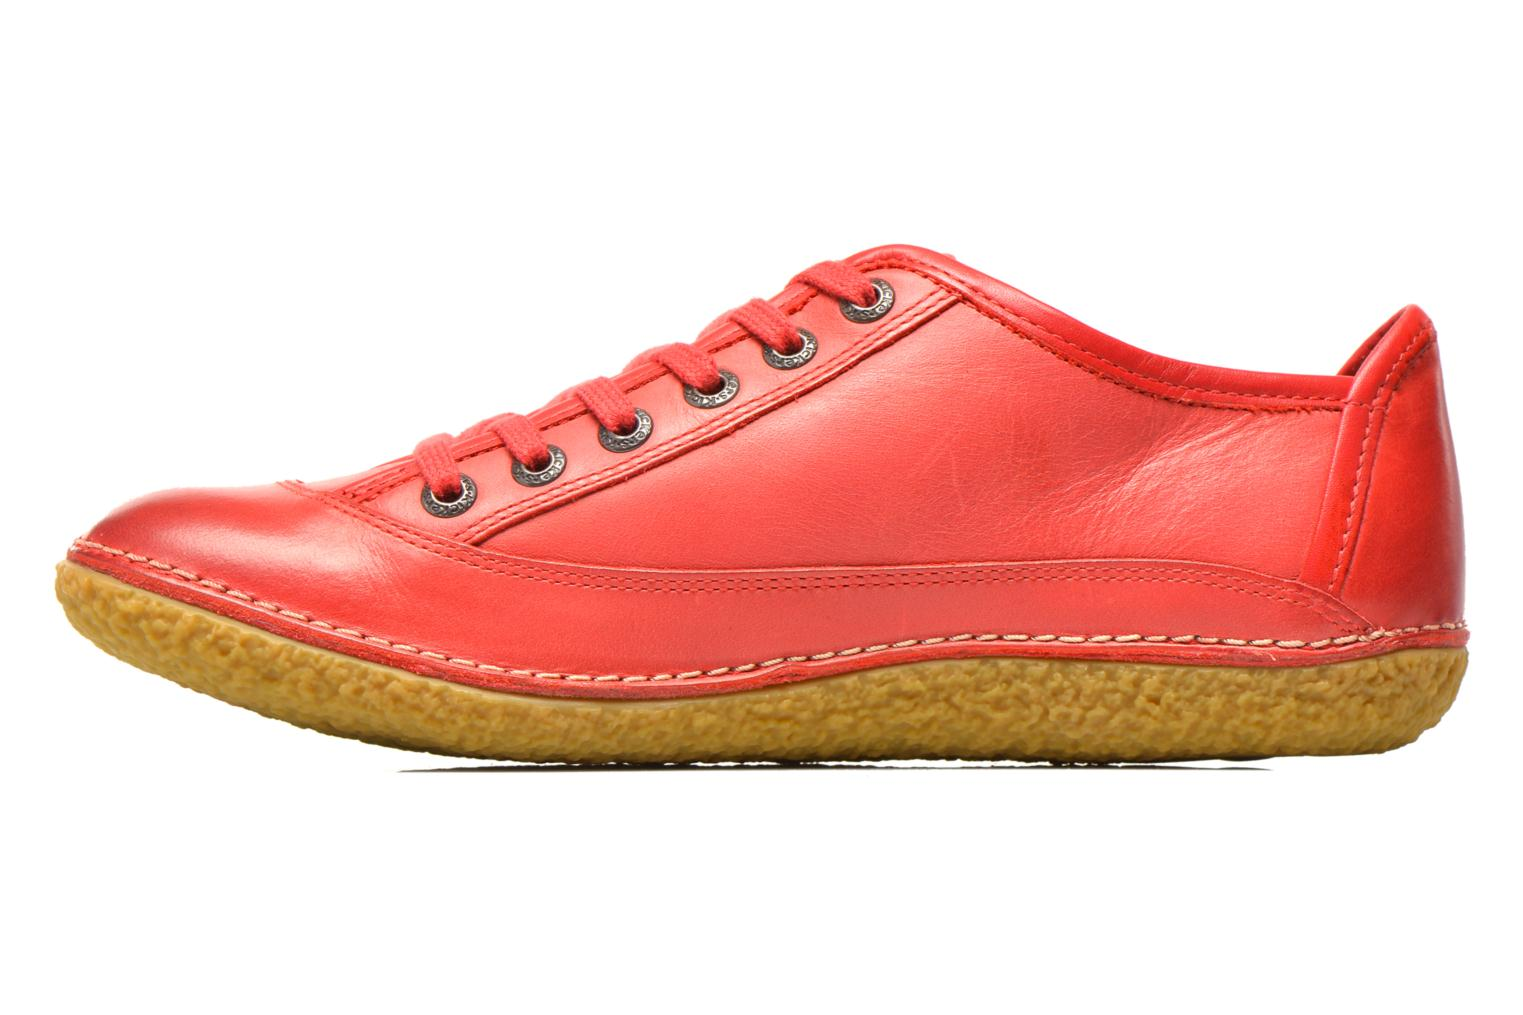 Chaussures à lacets Kickers Hollyday Rouge vue face